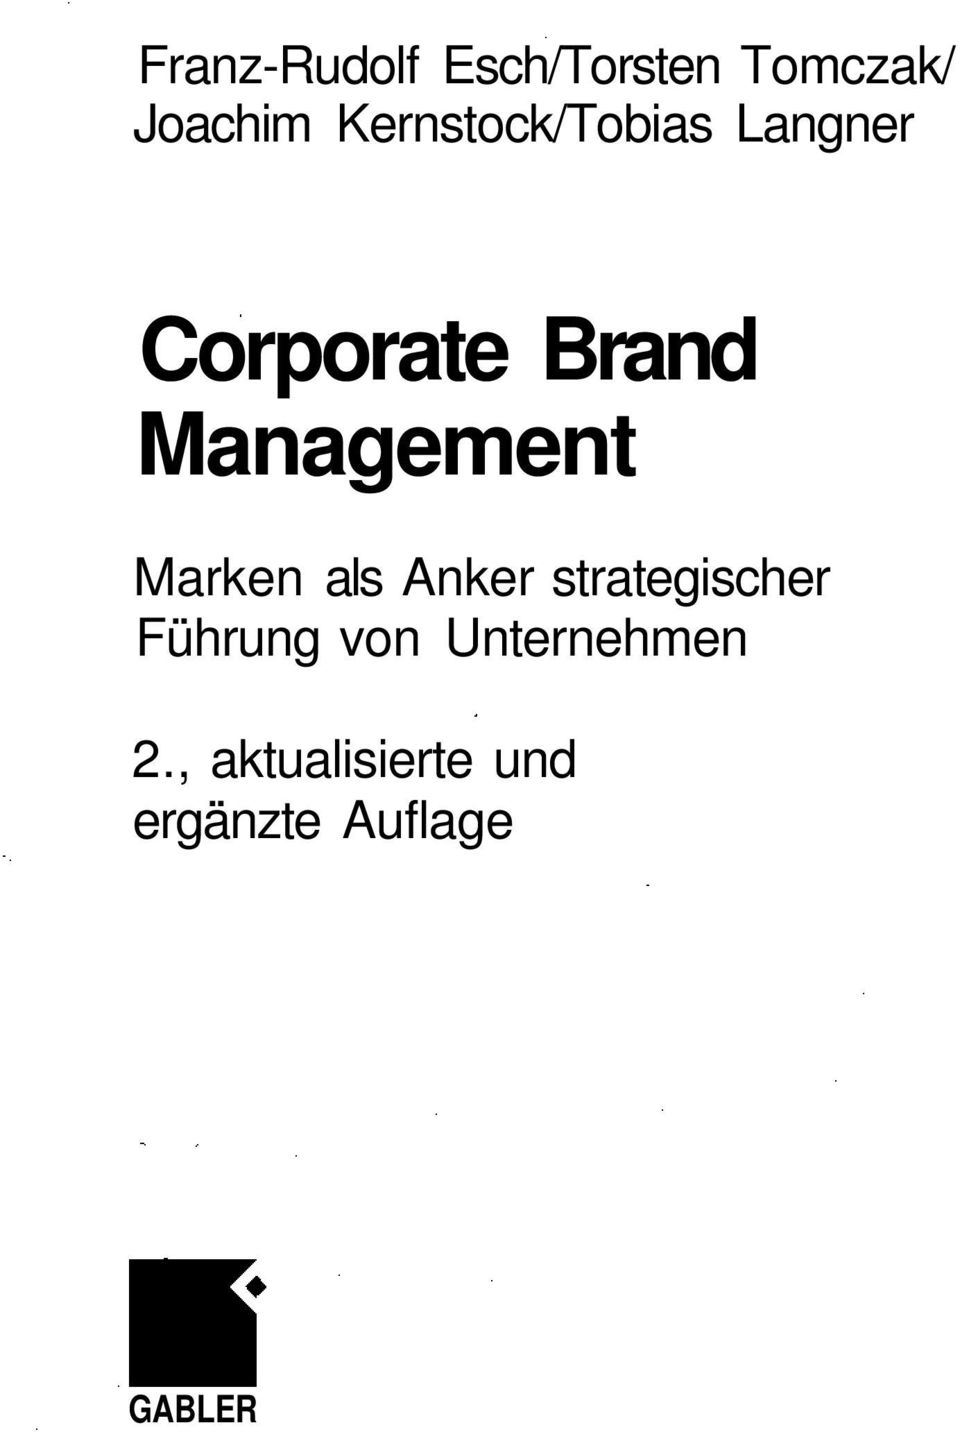 Management Marken als Anker strategischer